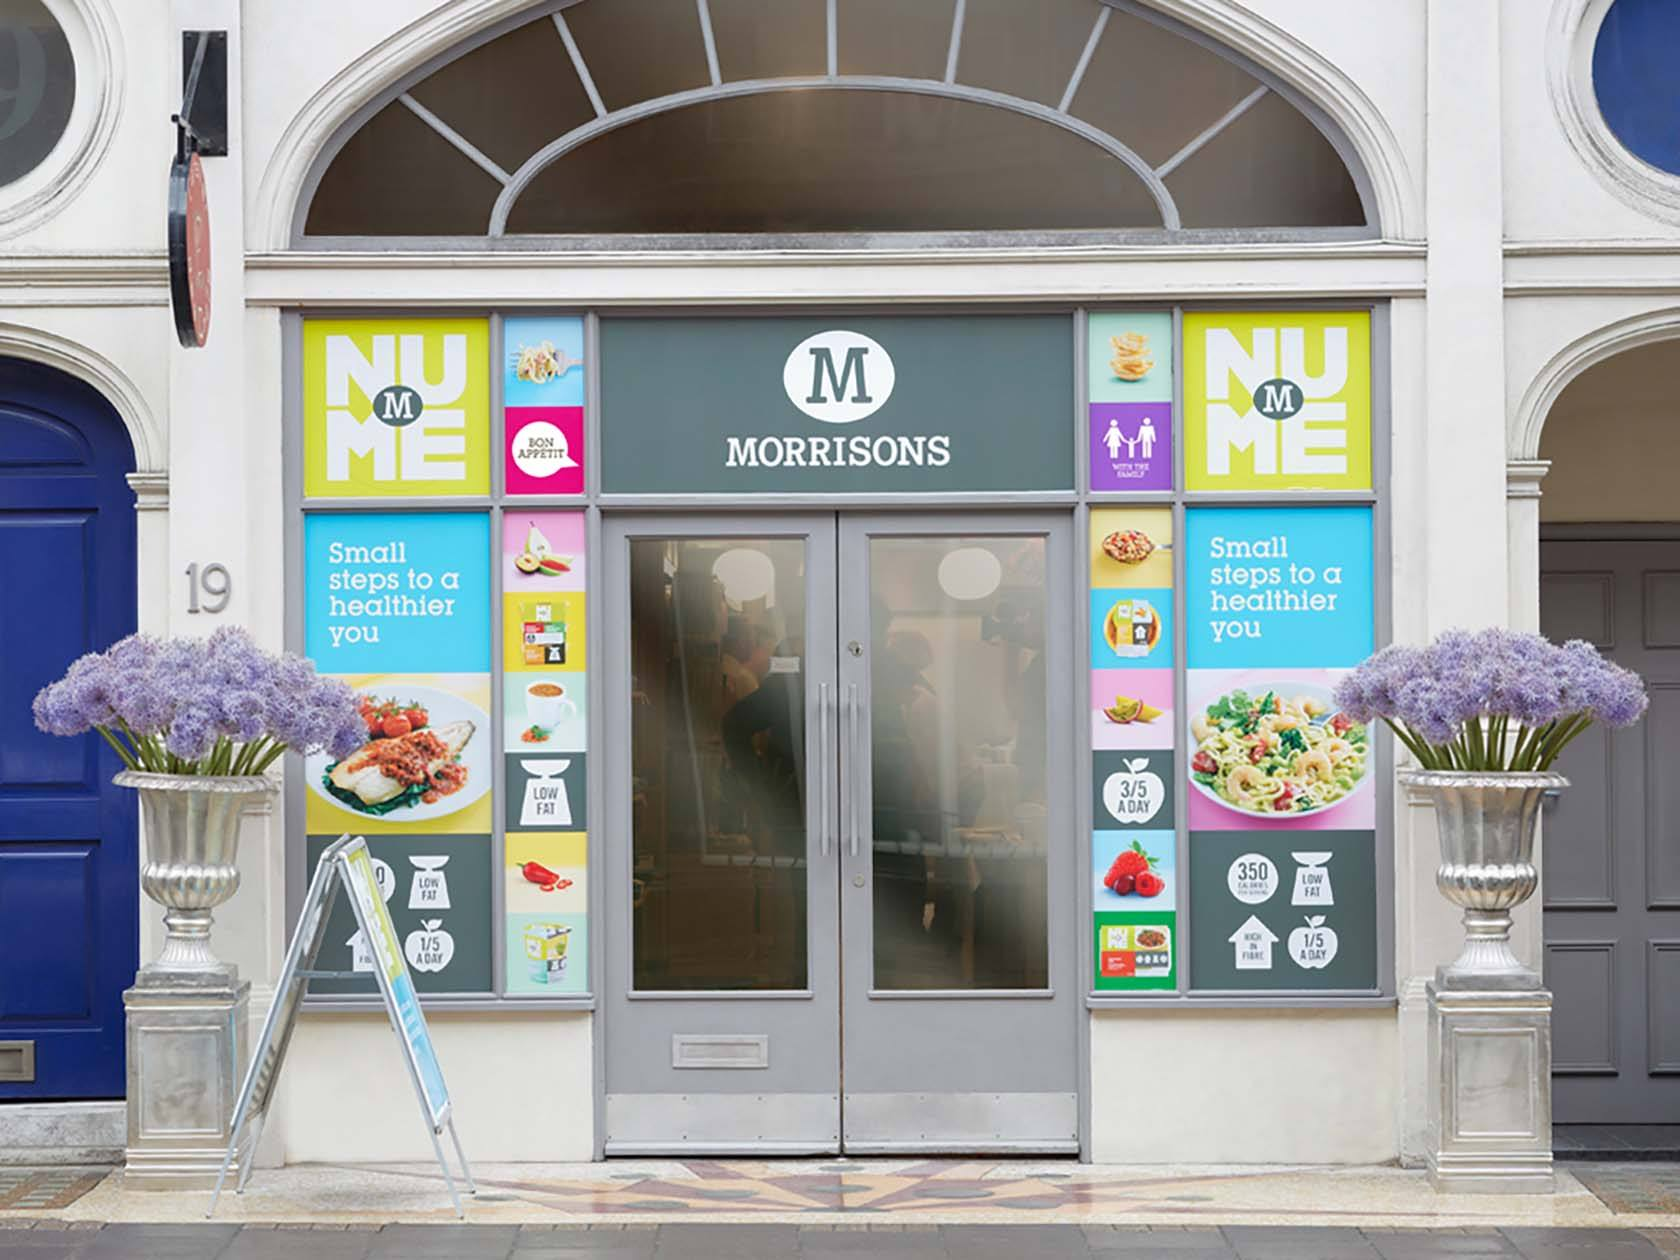 WMH-NUME-MORRISONS-LAUNCH-EVENT-ENTRANCE-WEB image